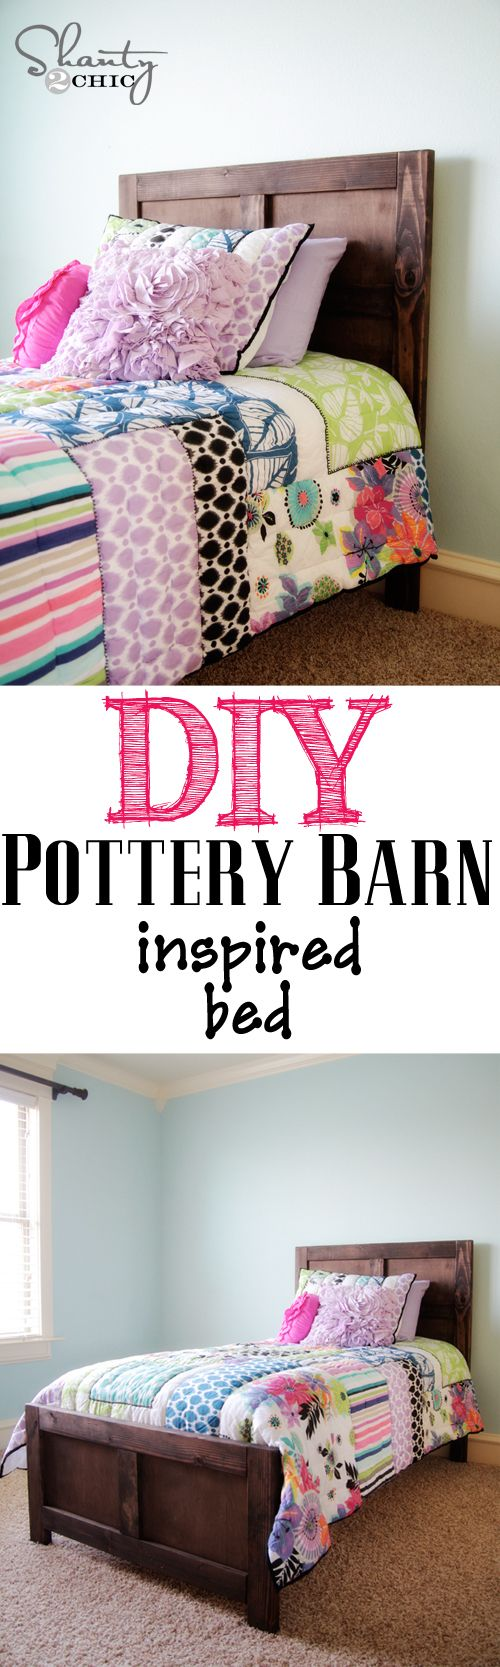 DIY Pottery Barn Inspired Bed - Cheap & Cute - excellent tutorial - I need to make some twin beds our old ones have seen better days. This is shown stained, but of course it could painted too.